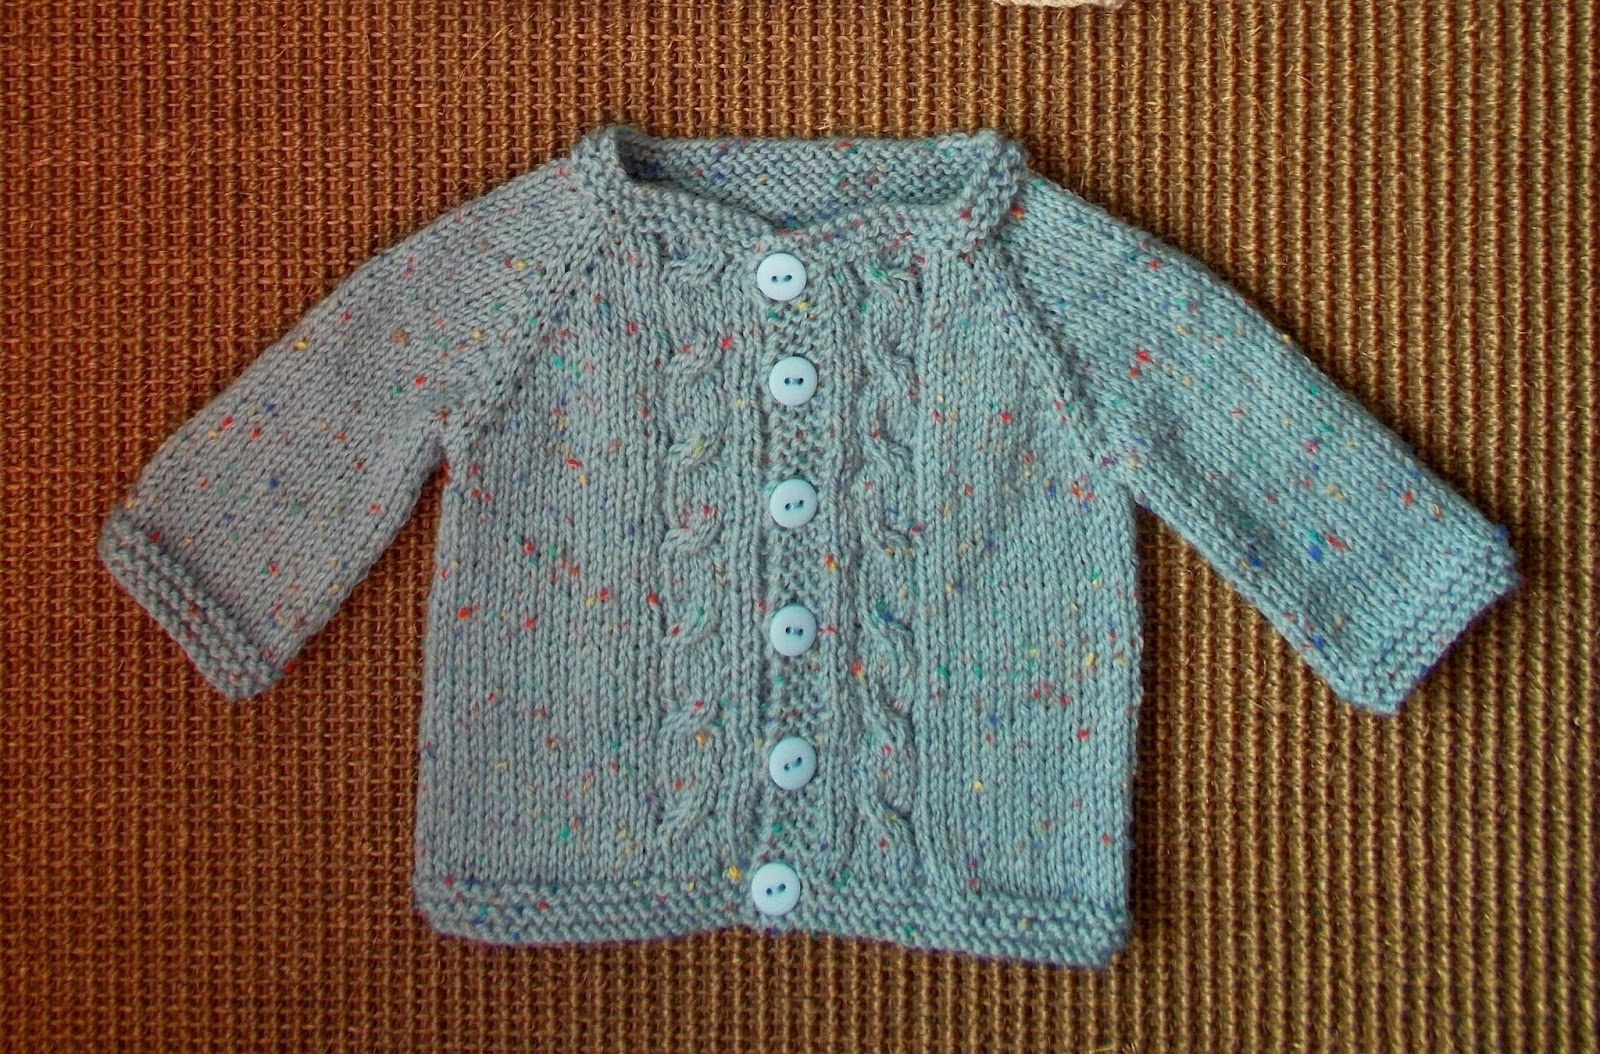 Knitting Pattern Baby Jacket : mariannas lazy daisy days: Max Baby Cardigan Jacket - with eyelet raglan...